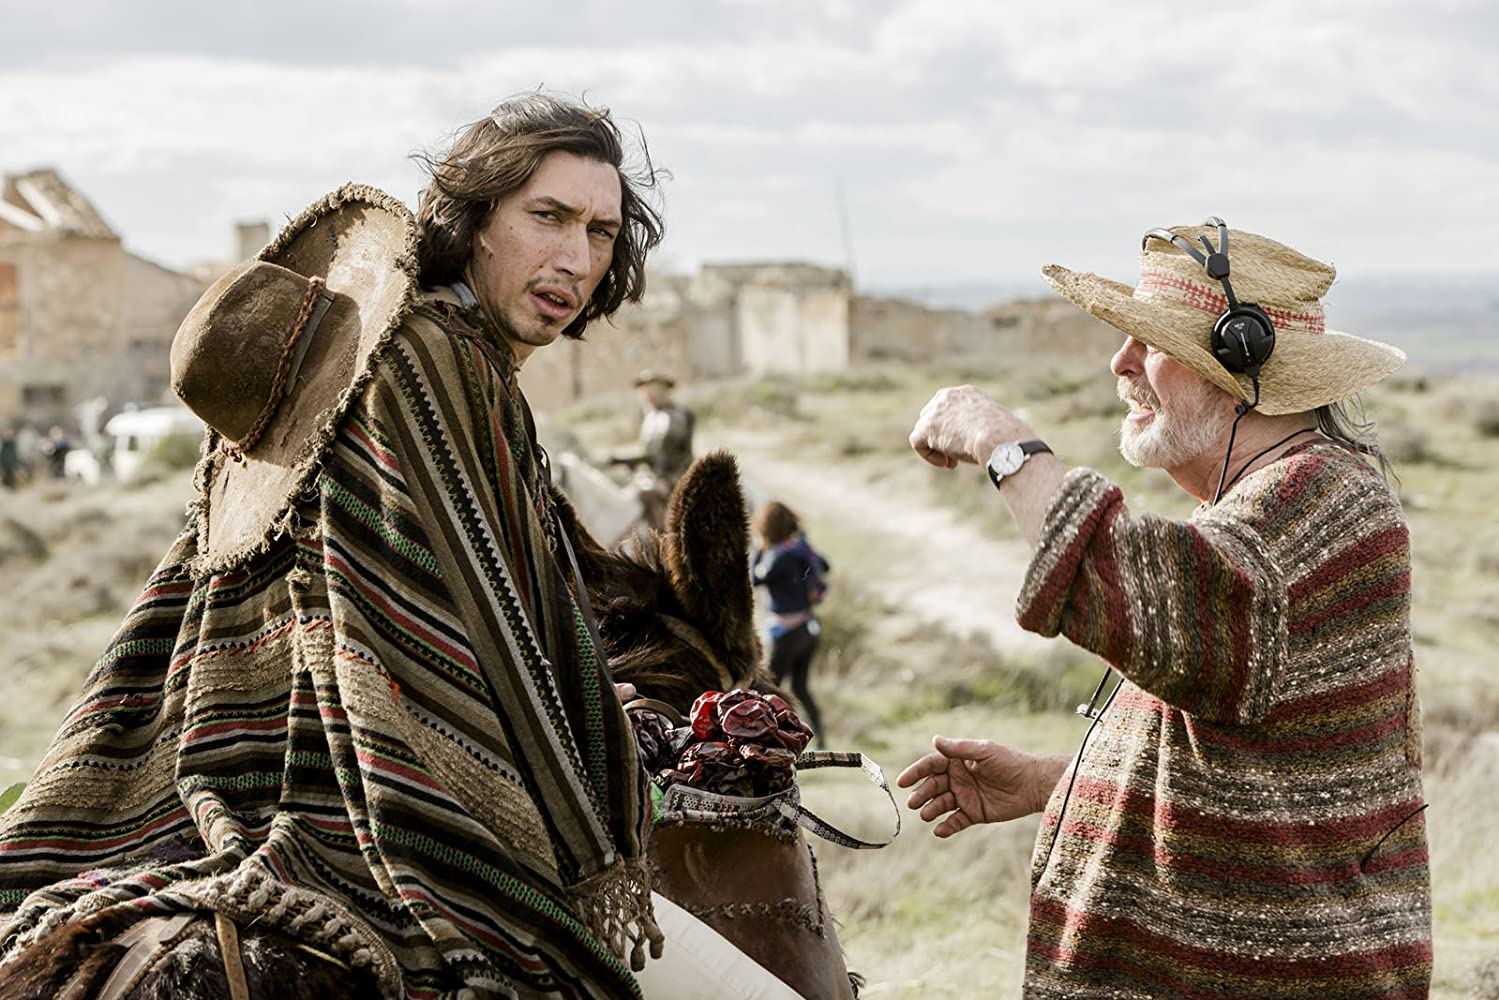 Terry Gilliam and Adam Driver in The Man Who Killed Don Quixote (2018)